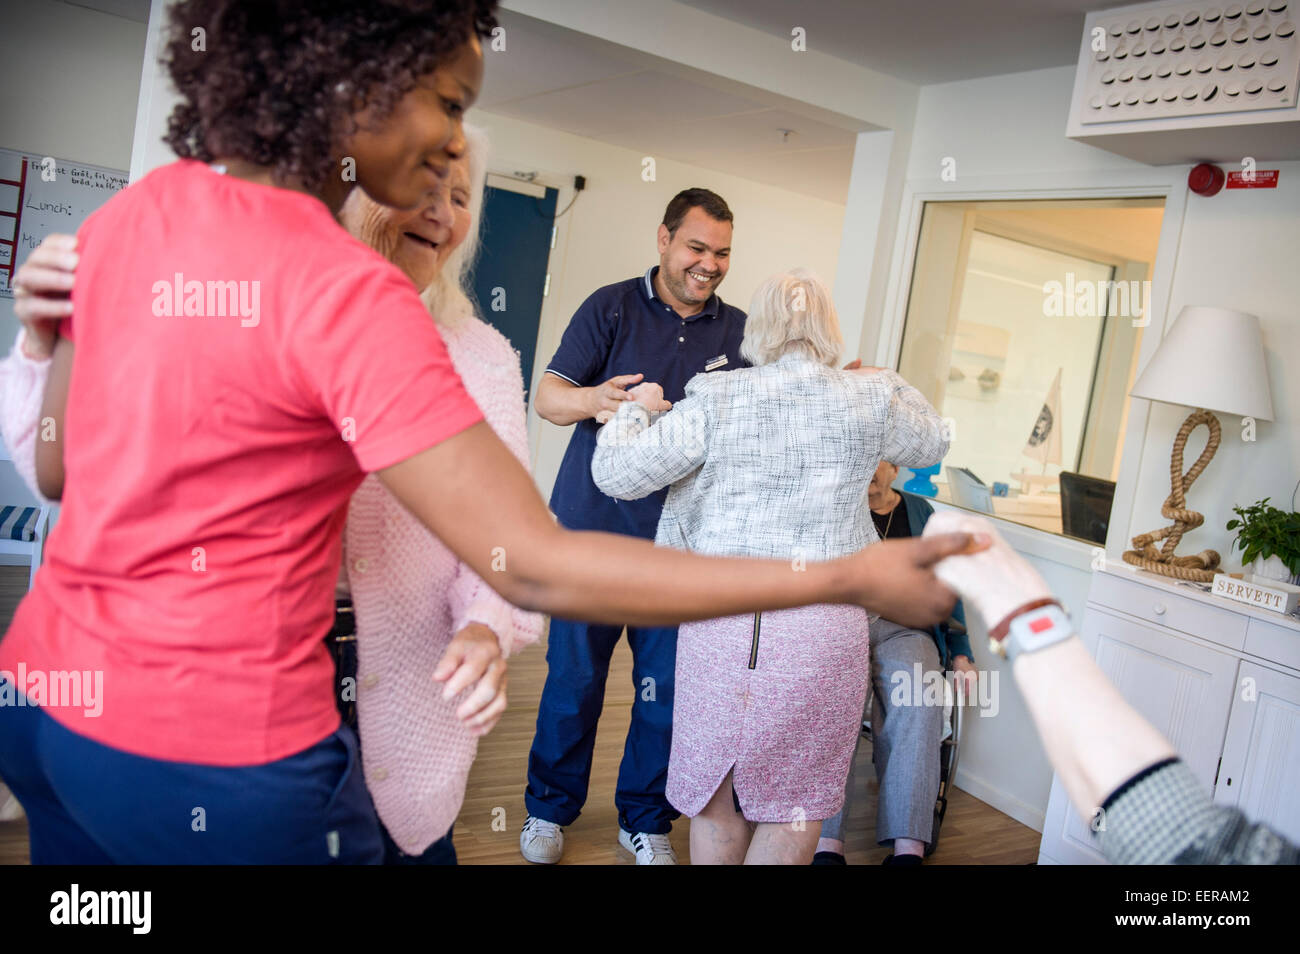 Nursery home, afternoon dance - Stock Image